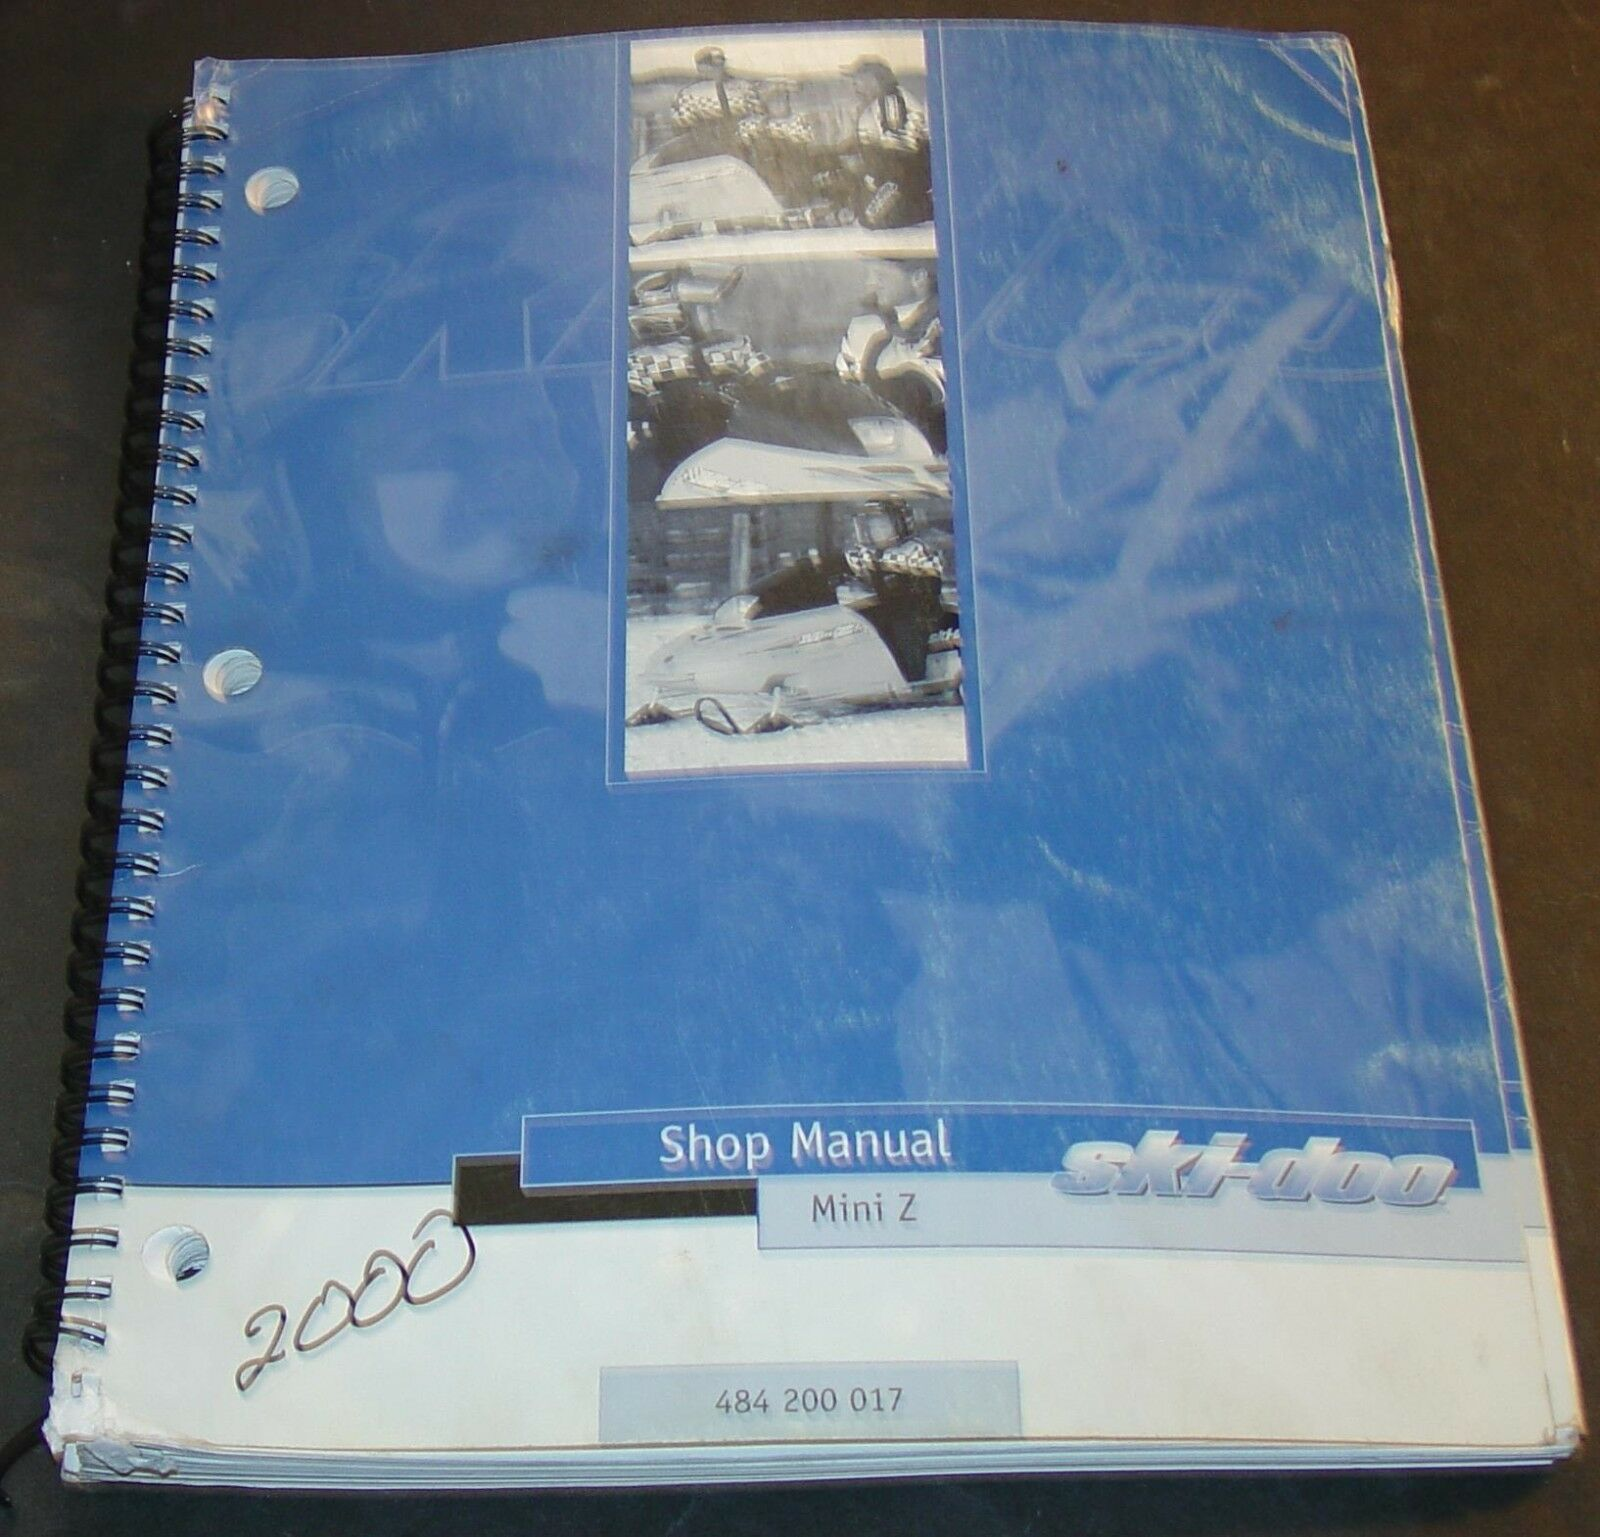 2000 SKI-DOO MINI Z SNOWMOBILE SHOP SERVICE MANUAL P N 484 200 017  (559)